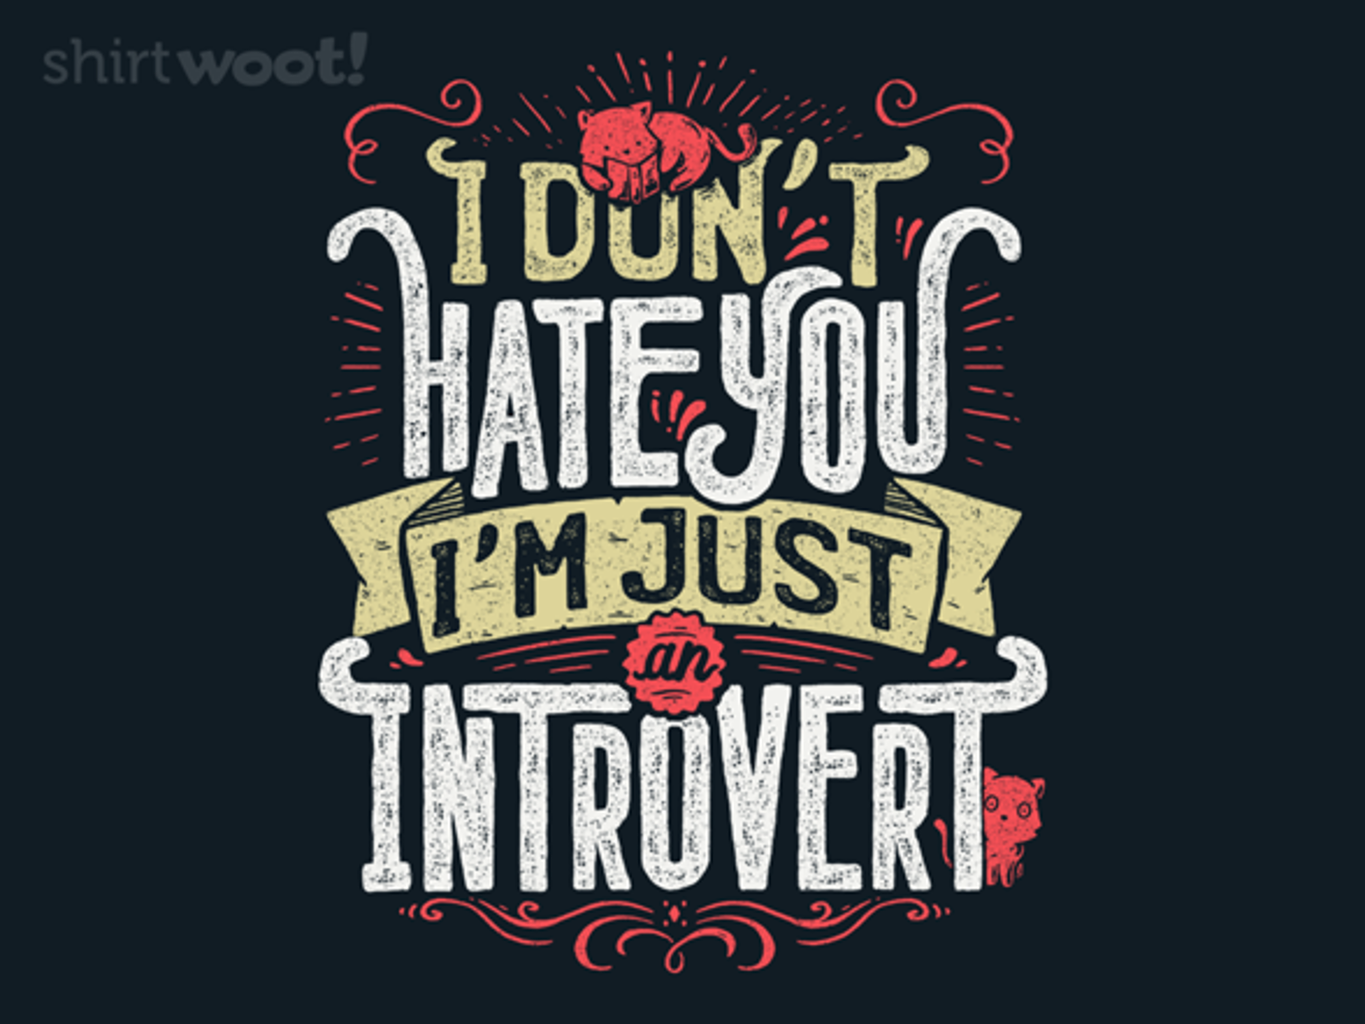 Woot!: I Don't Hate You